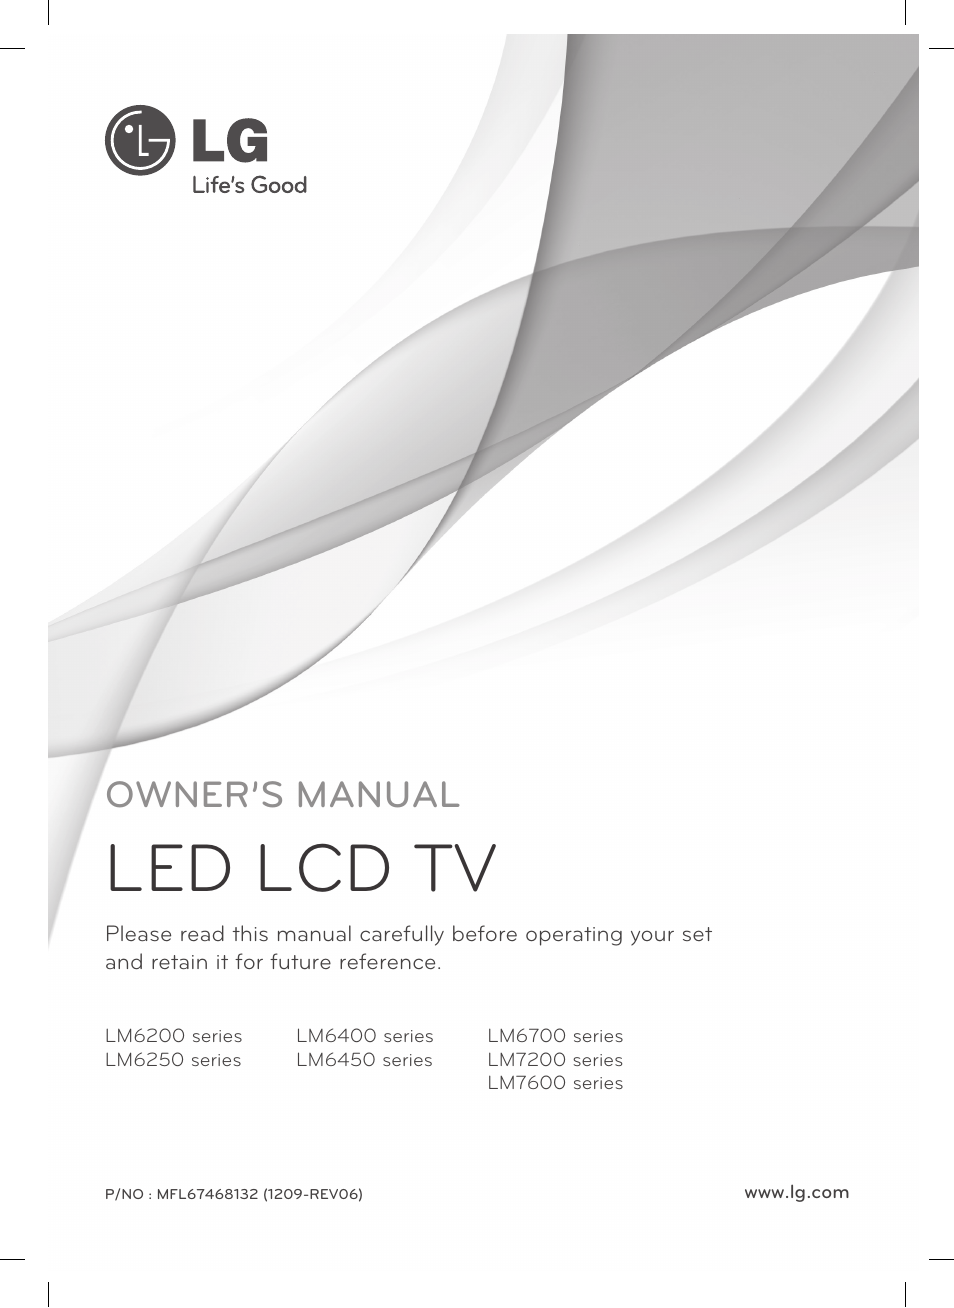 lg 47lm7600 user manual 44 pages also for 47lm6700 55lm6700 rh manualsdir com lg 55lm7600 user manual TV LG 55LM7600